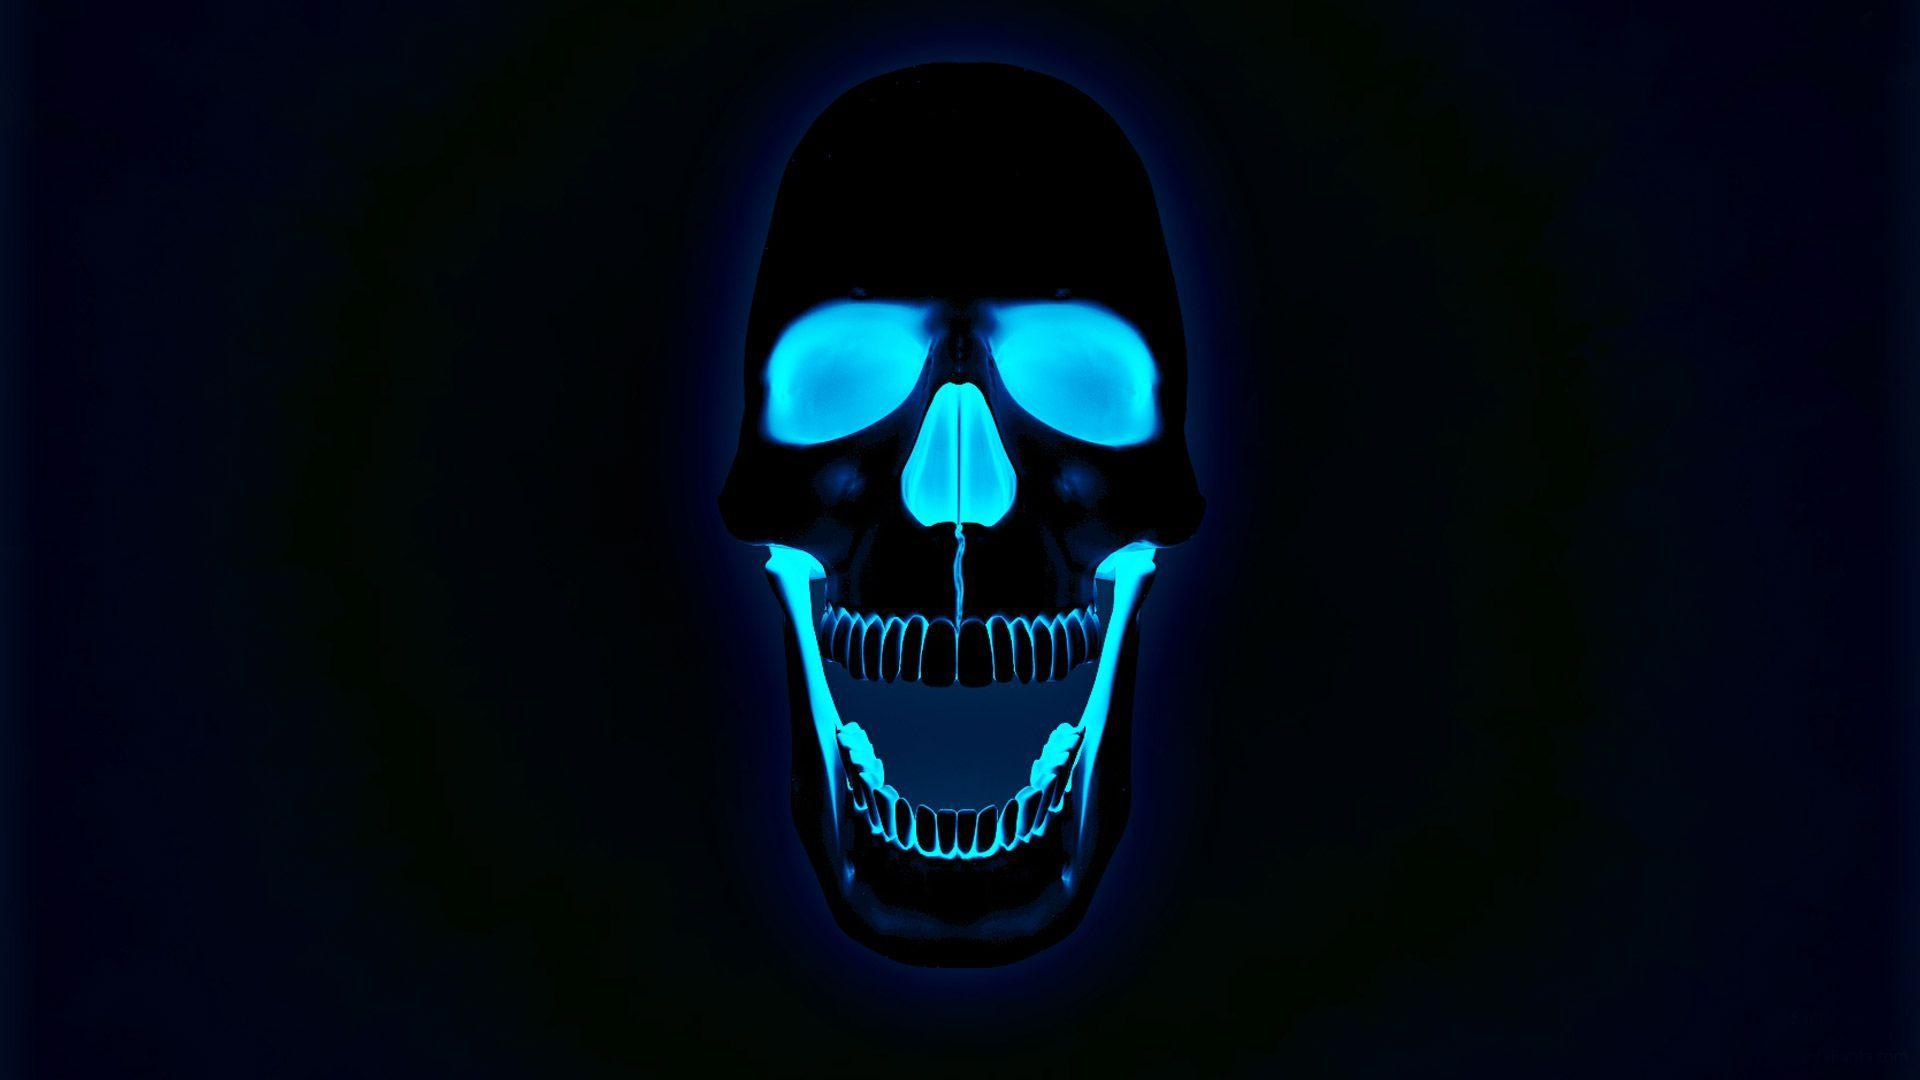 skull wallpaper wallpapers hd - photo #15